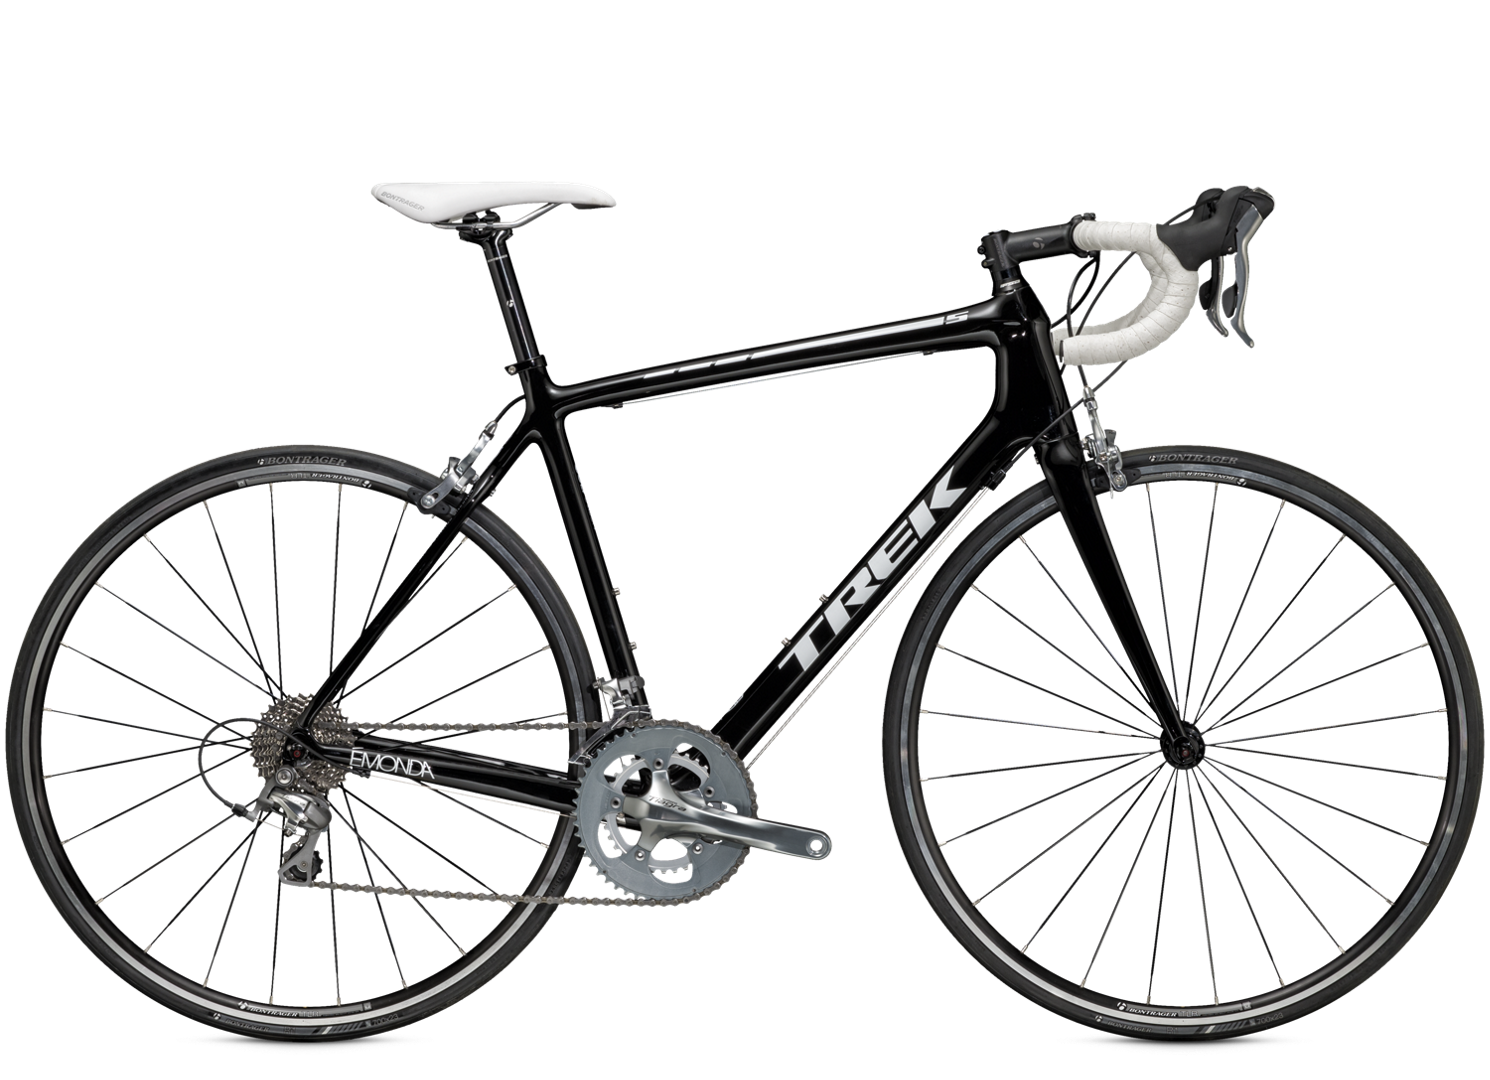 Trek's lightest production road line ever Every detail of the Emonda line, from frame design to each component choice on every model, serves the same audacious goal: to create the lightest line of production road bikes ever offered.